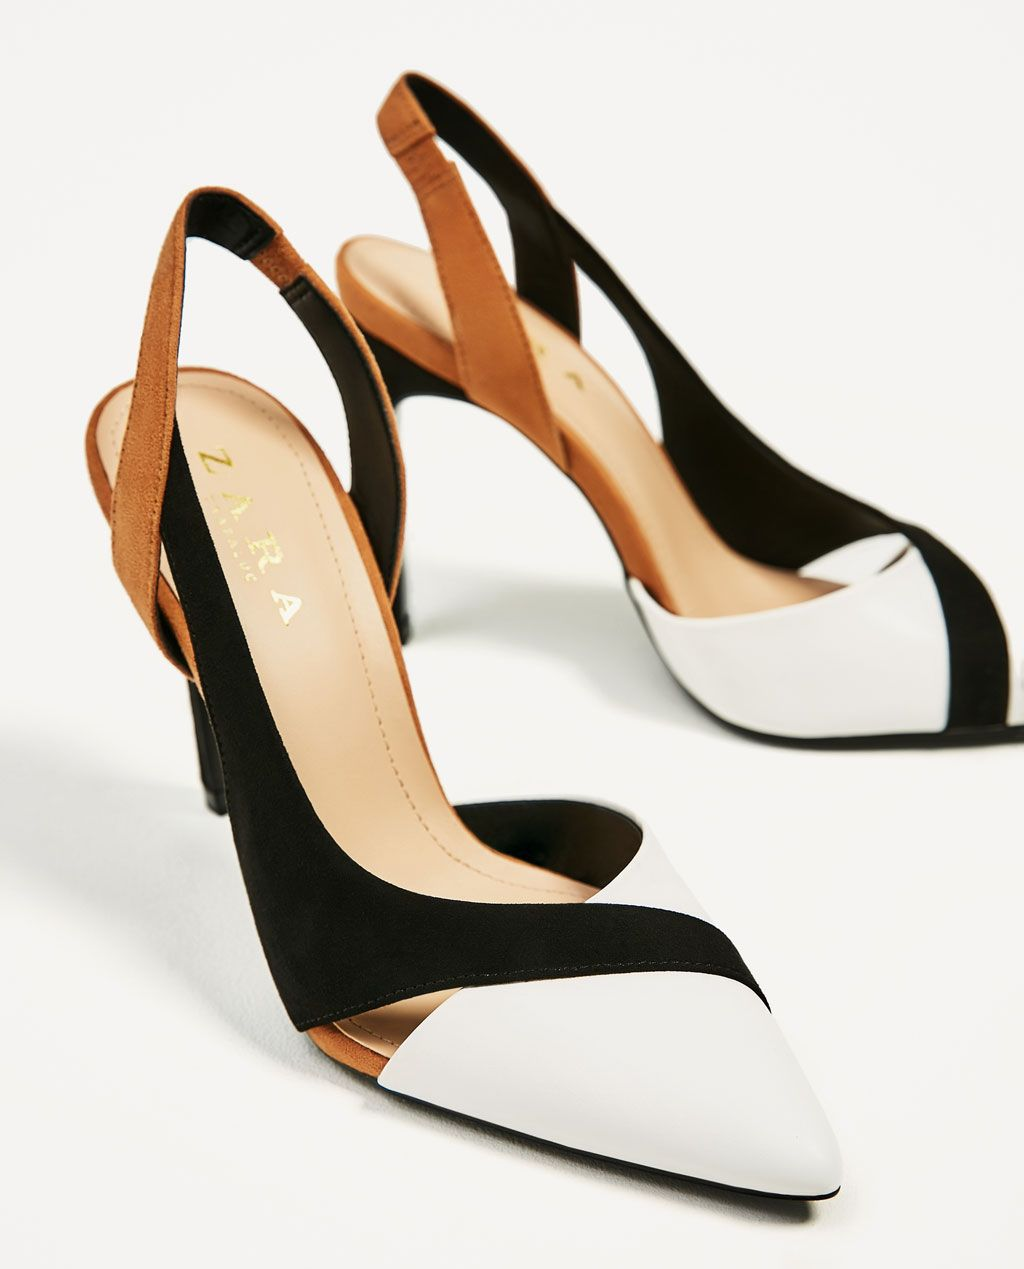 Contrast High Heel Shoes View All Shoes Woman Zara Canada Heels High Heels High Heel Shoes